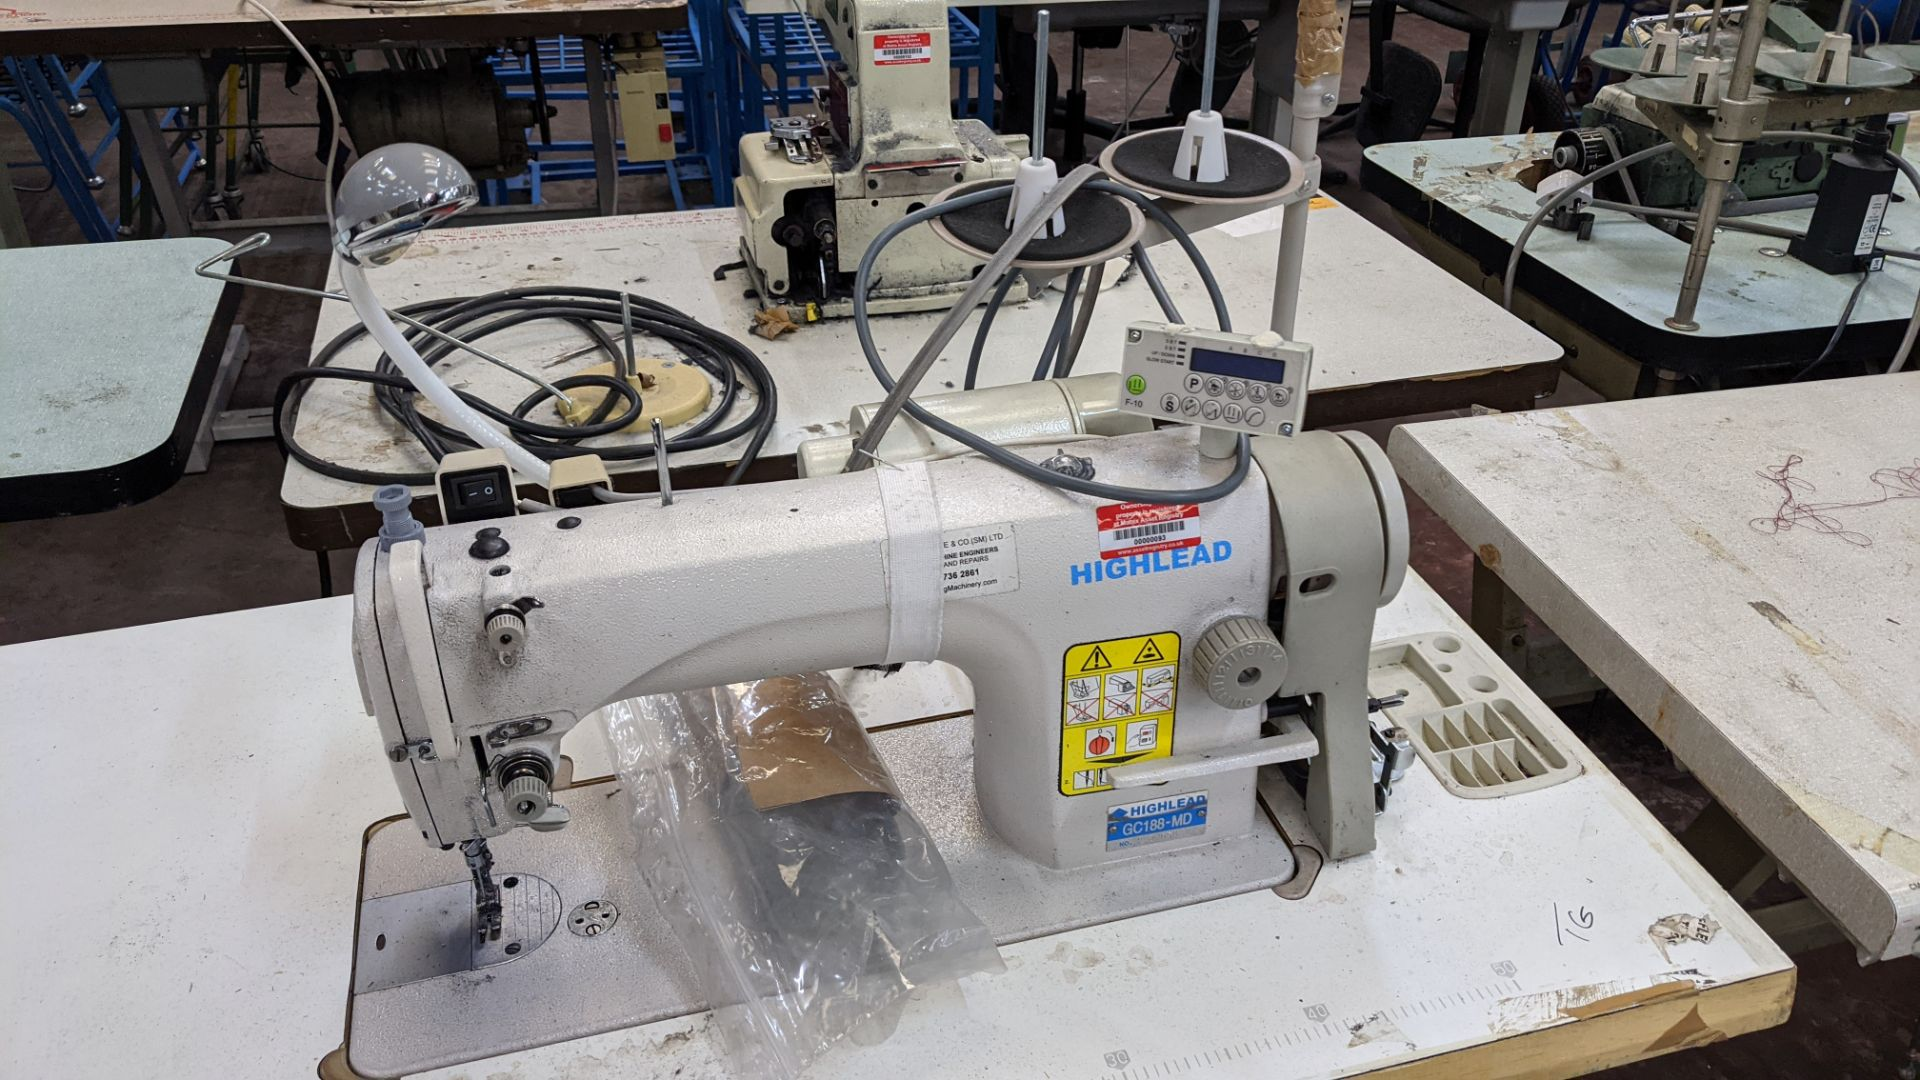 Highlead model GC188-MD sewing machine with model F-10 digital controller - Image 5 of 15